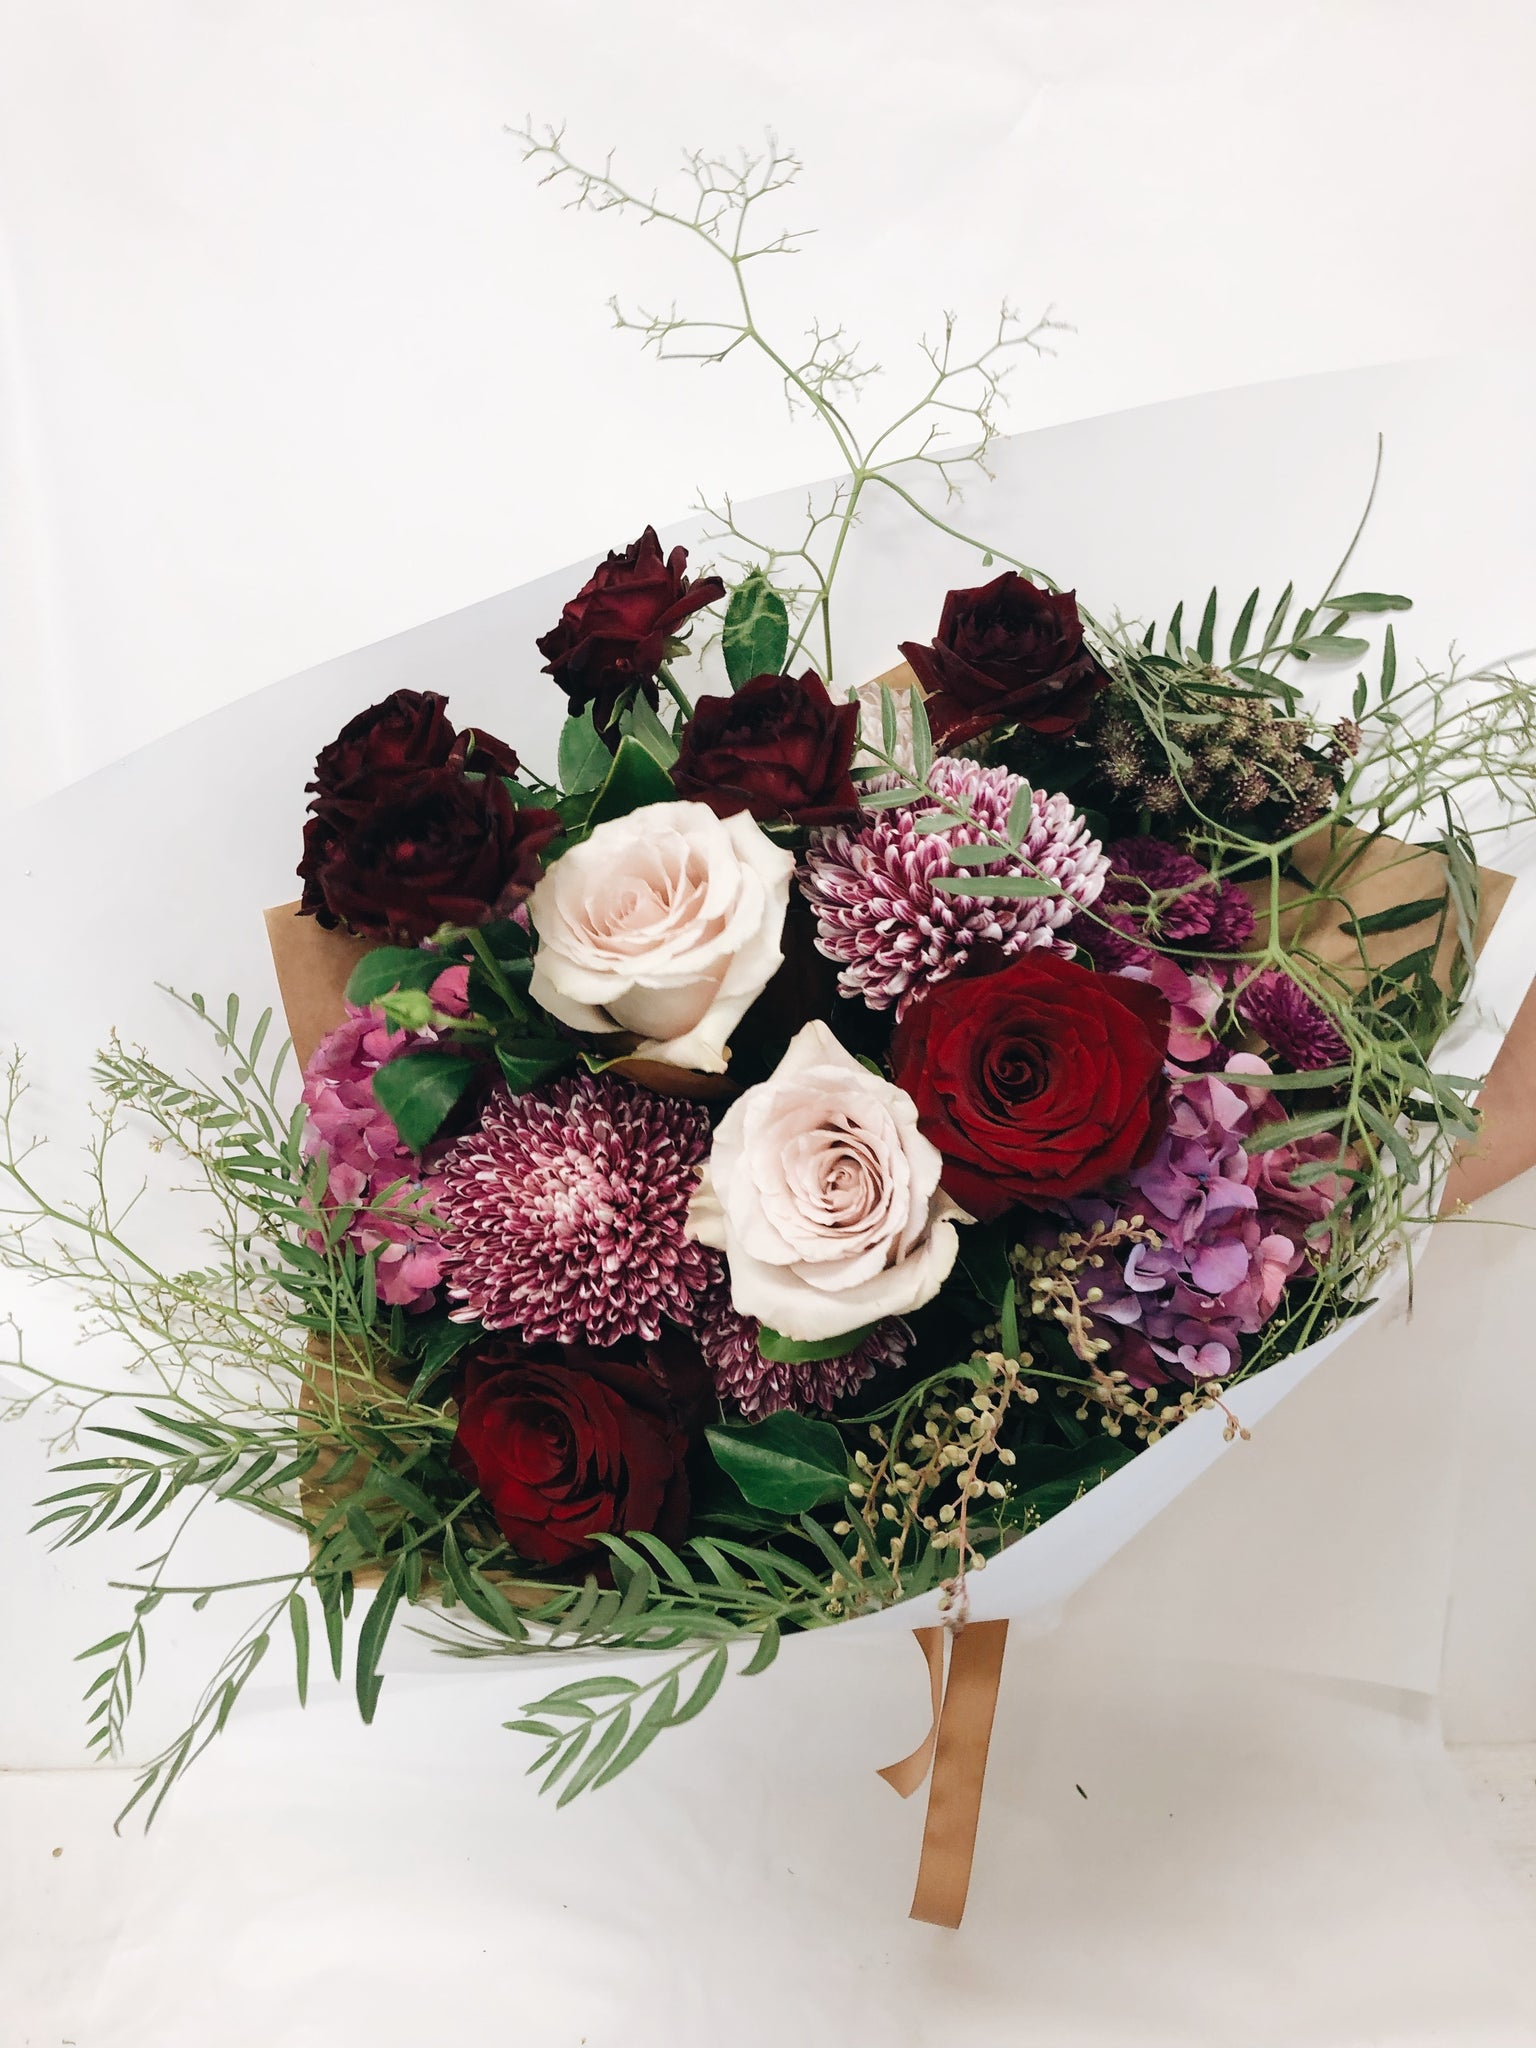 Valentines day flowers gifts hampers day roses romantic bouquet Sunshine Coast delivery Coolum Beach Peregian spring perigian beach Maroochydore buderim noosa florist